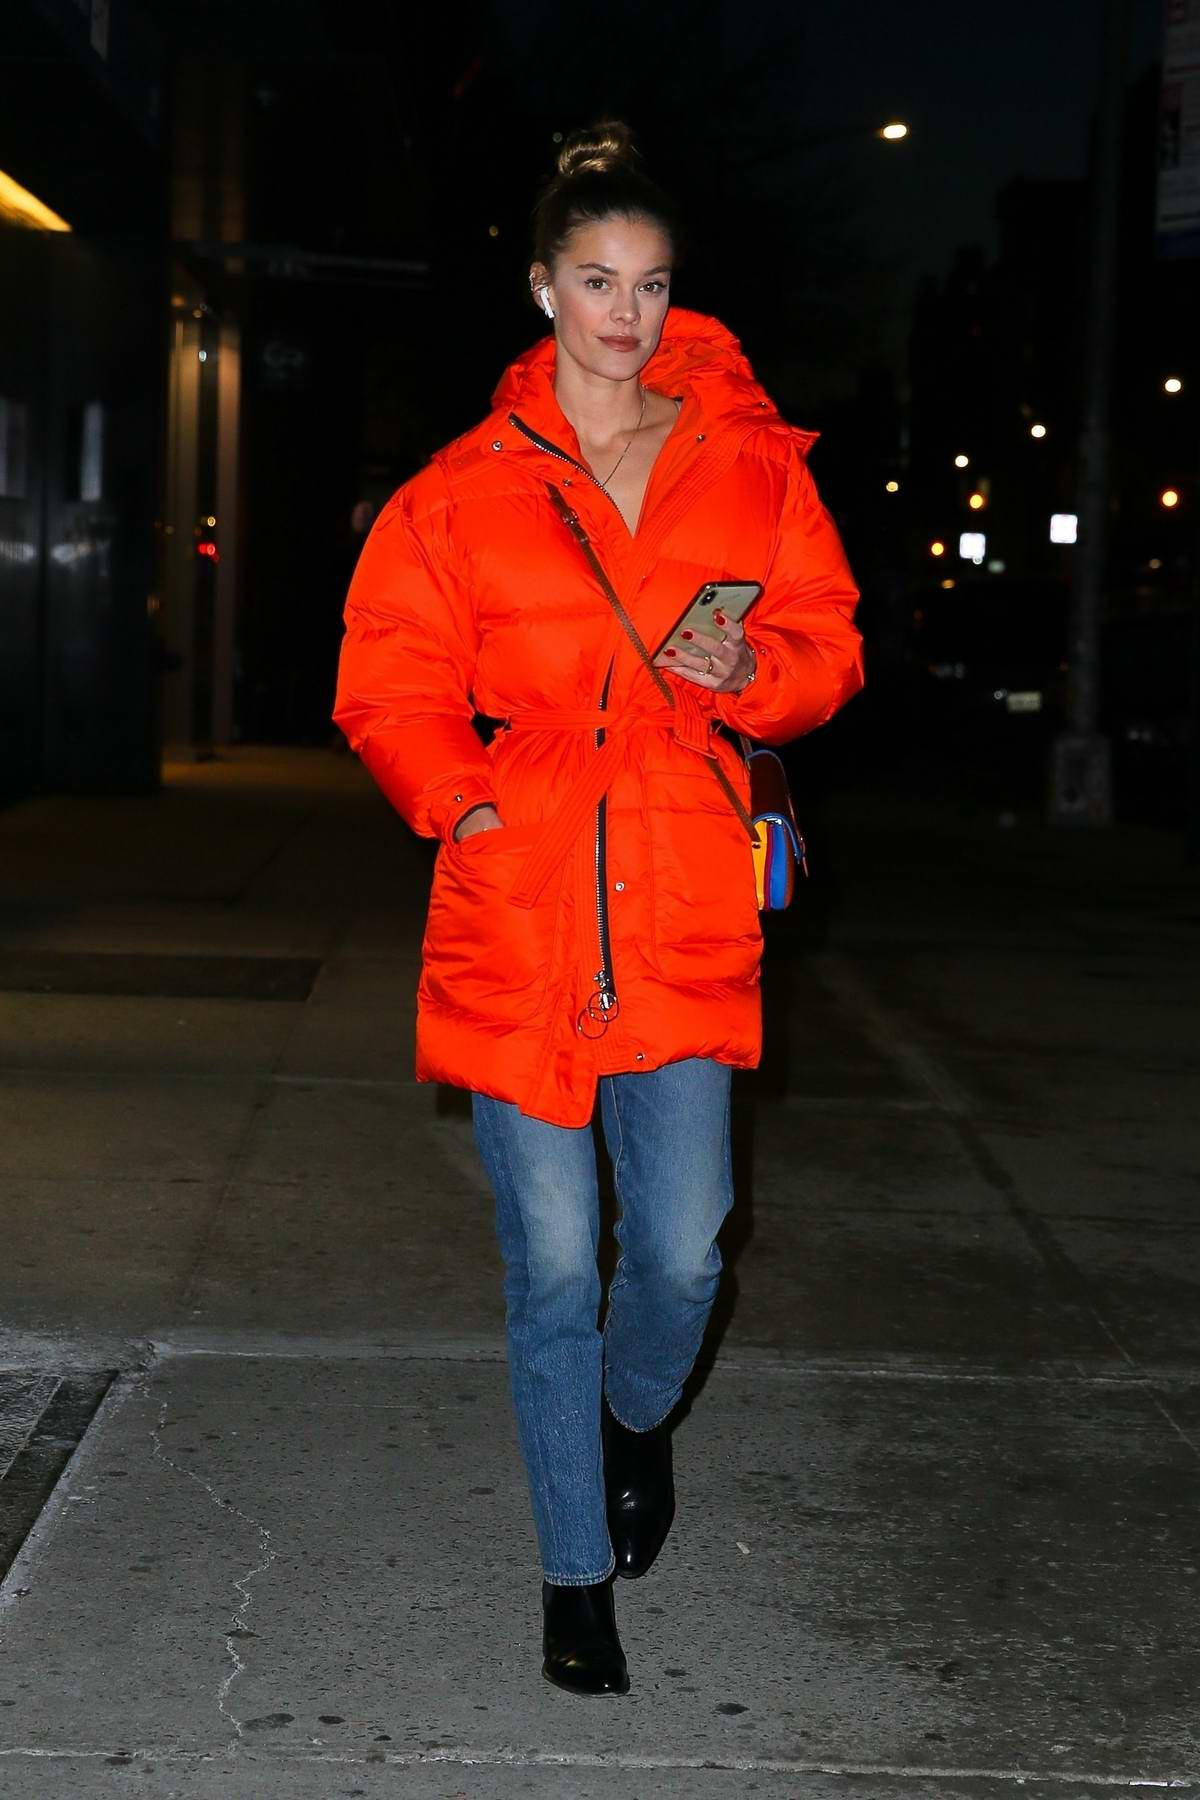 Nina Agdal looks striking in a bright orange jacket as she steps out in New York City